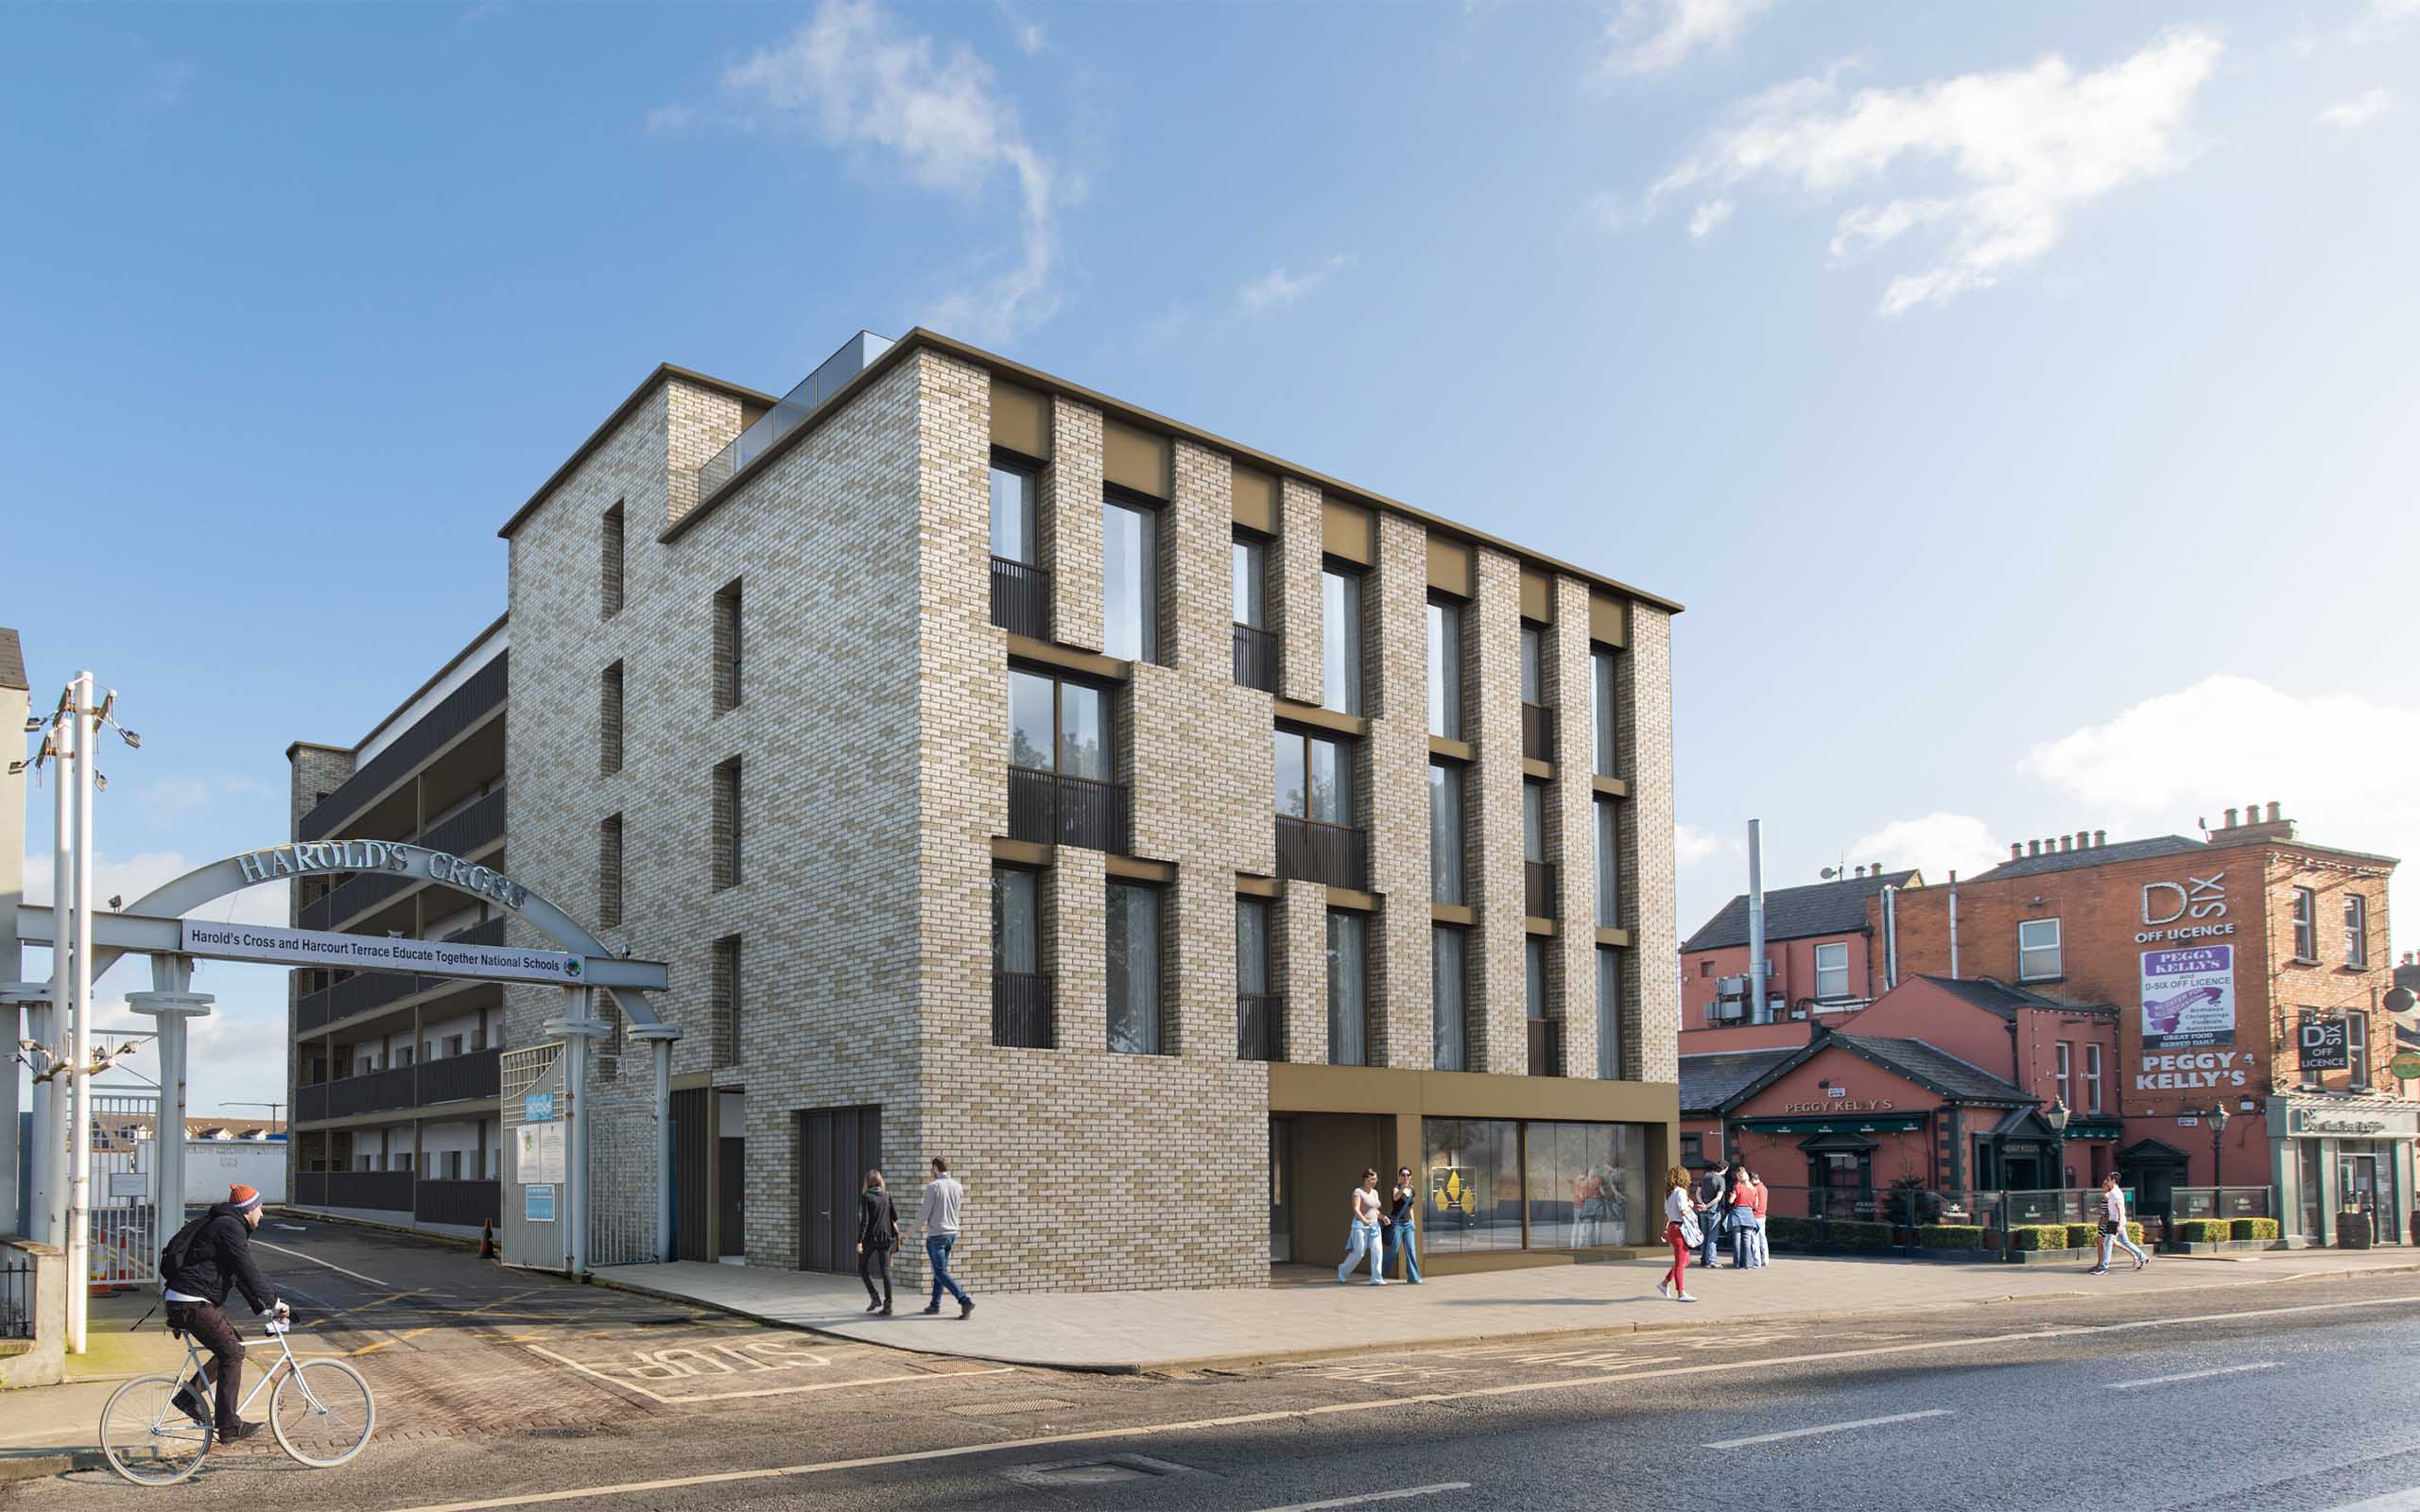 Architectural CGI of BTR Apartments in Harold's Cross